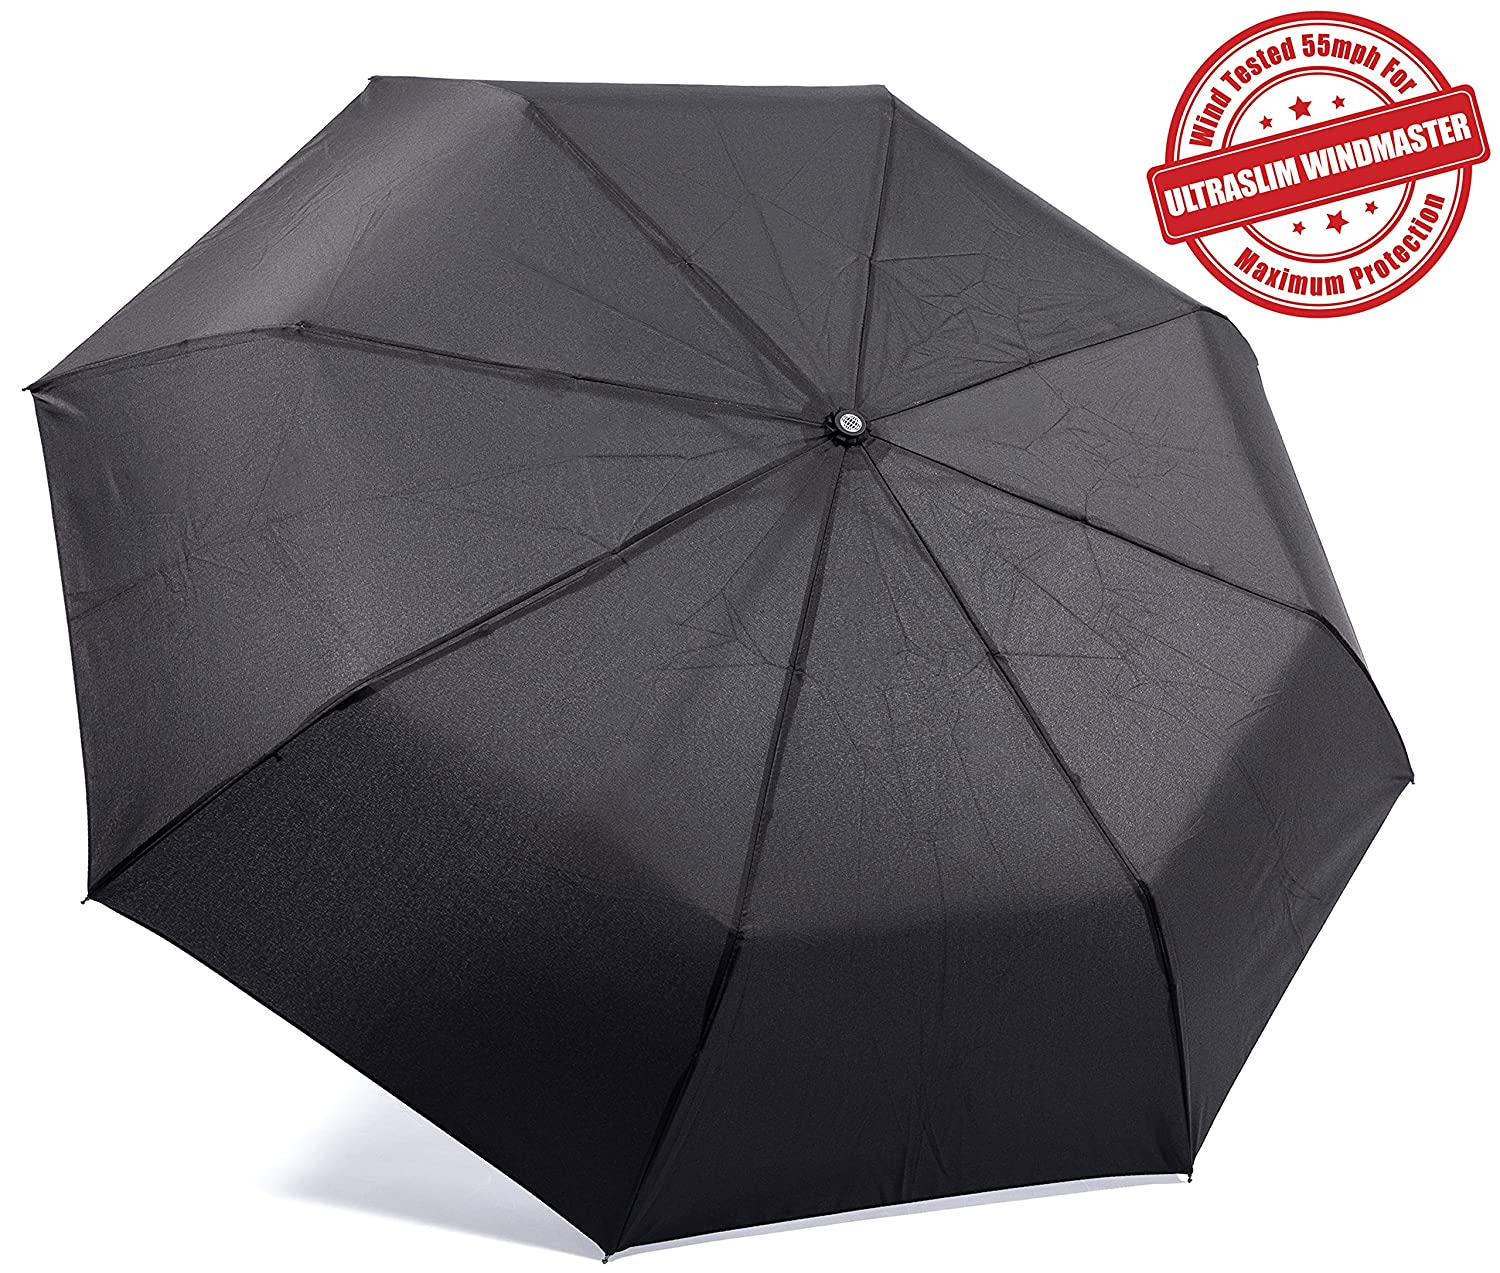 """Unbreakable"" Windproof Umbrellas Tested 55MPH Proven ""Guaranteed Lifetime Replacement"" Auto Open Close For One Hand Operation, Won"